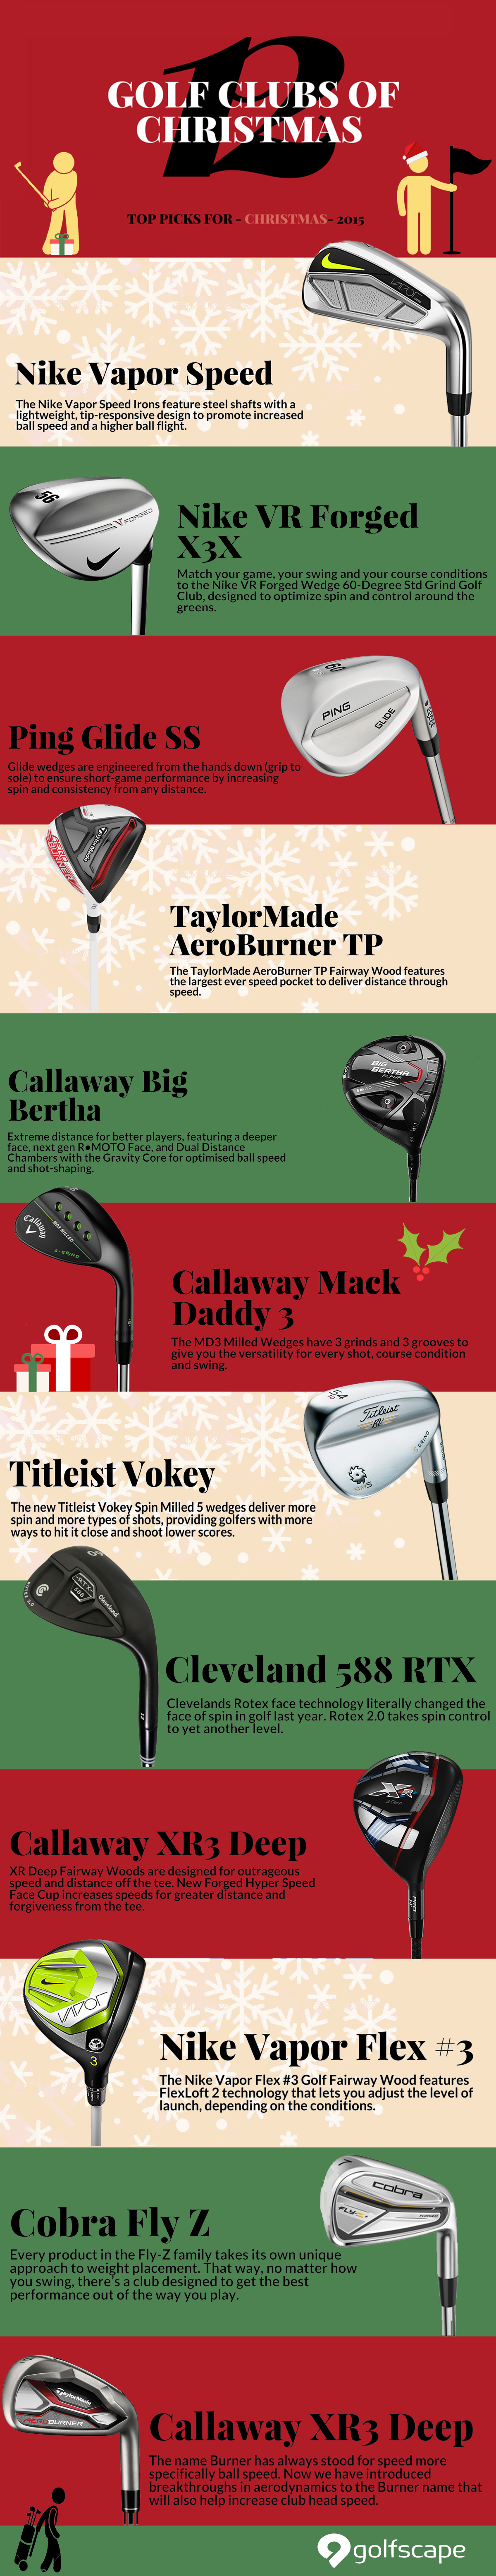 golf, golfing, golf clubs, sport, Christmas gifts